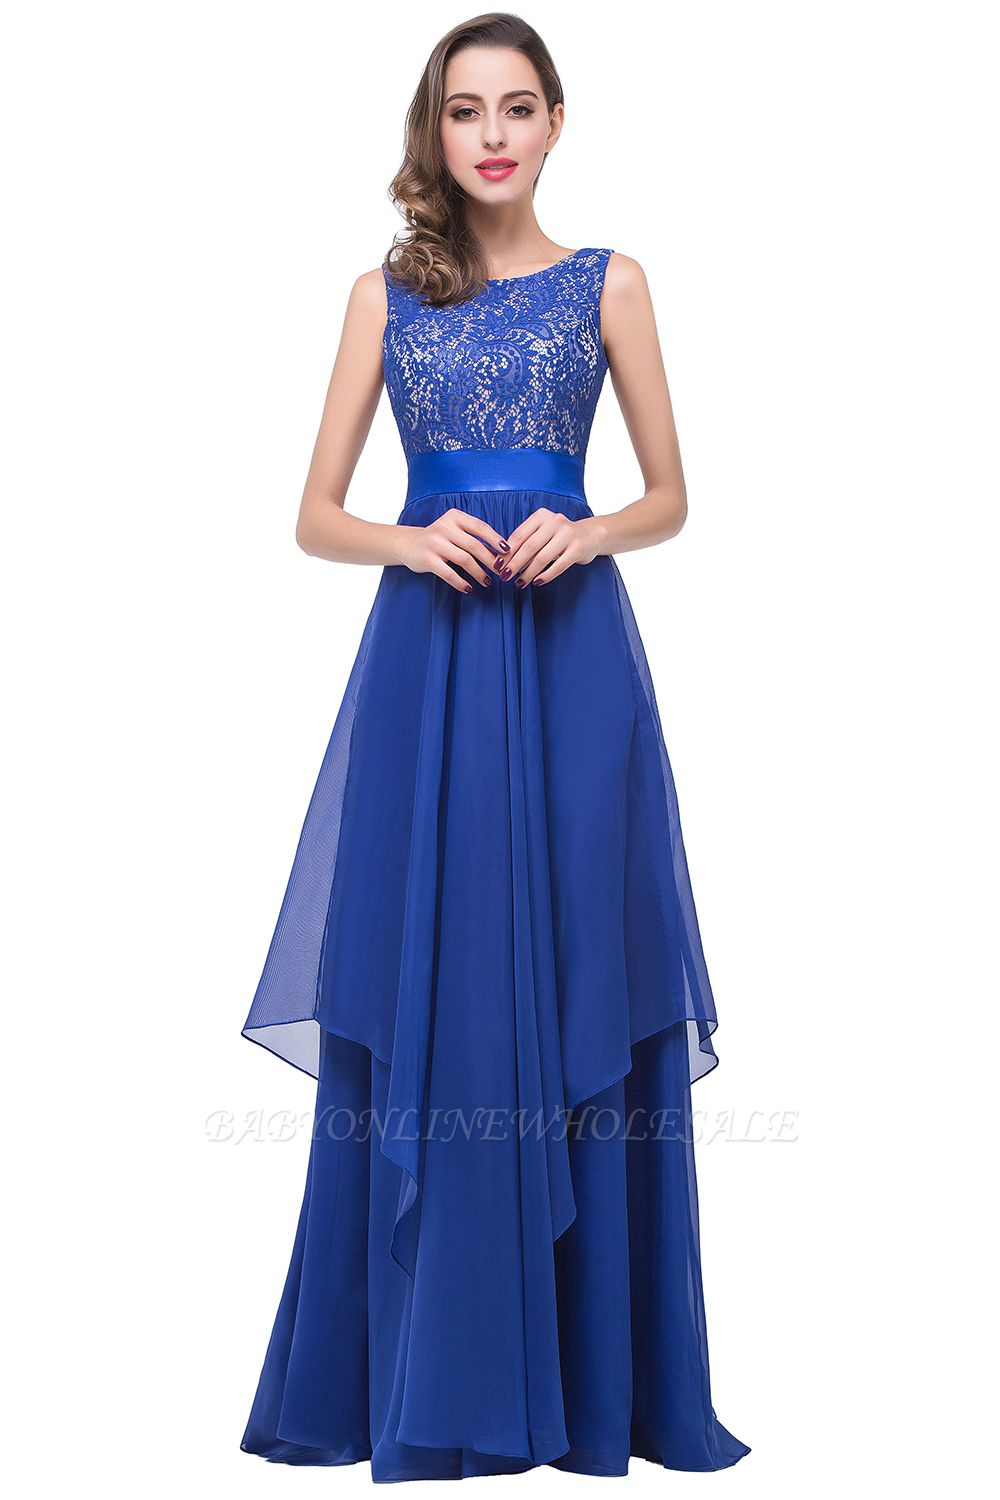 ADDISON | A-line Floor-length Chiffon Evening Dress with Lace